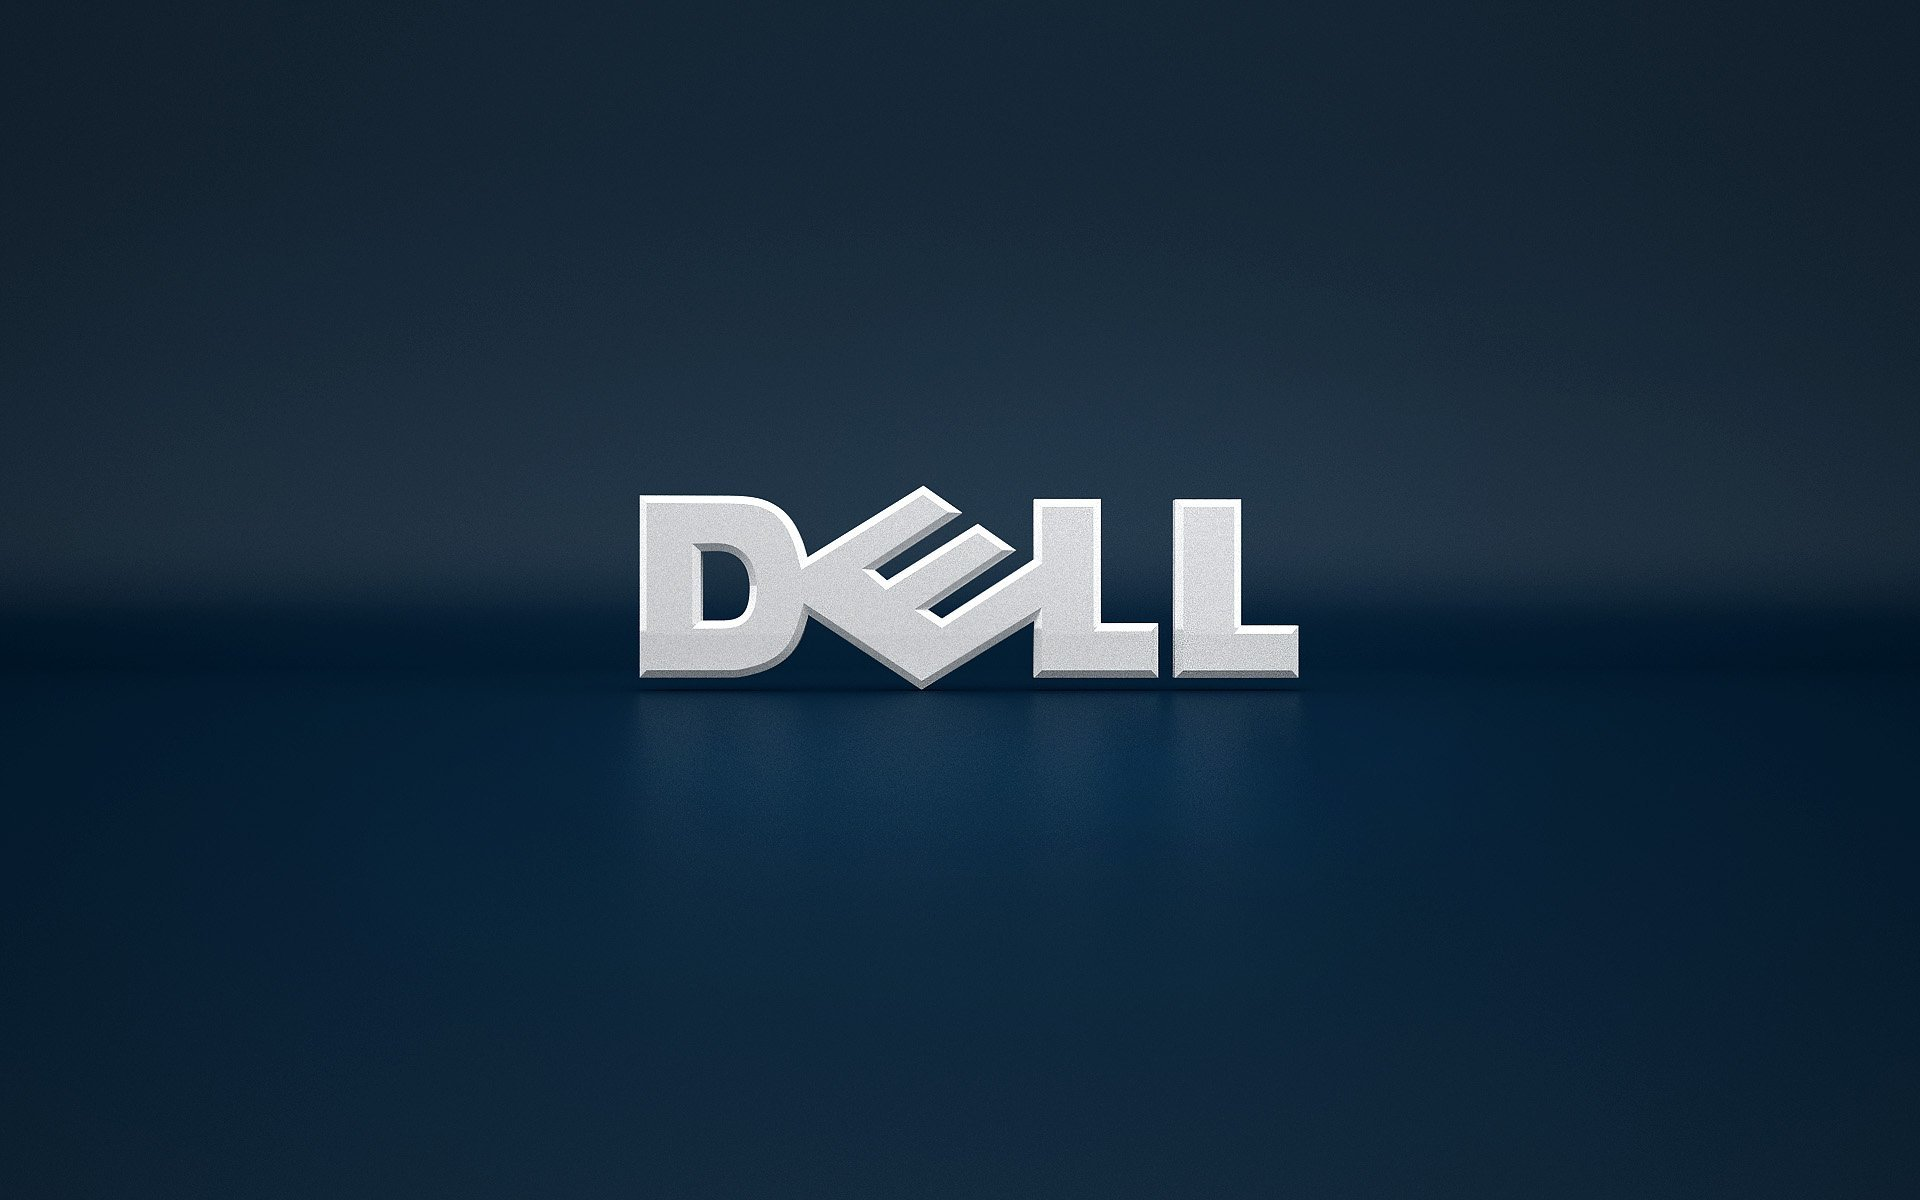 Hd Wallpapers Hd Backgrounds: Dell HD Wallpapers 1080p